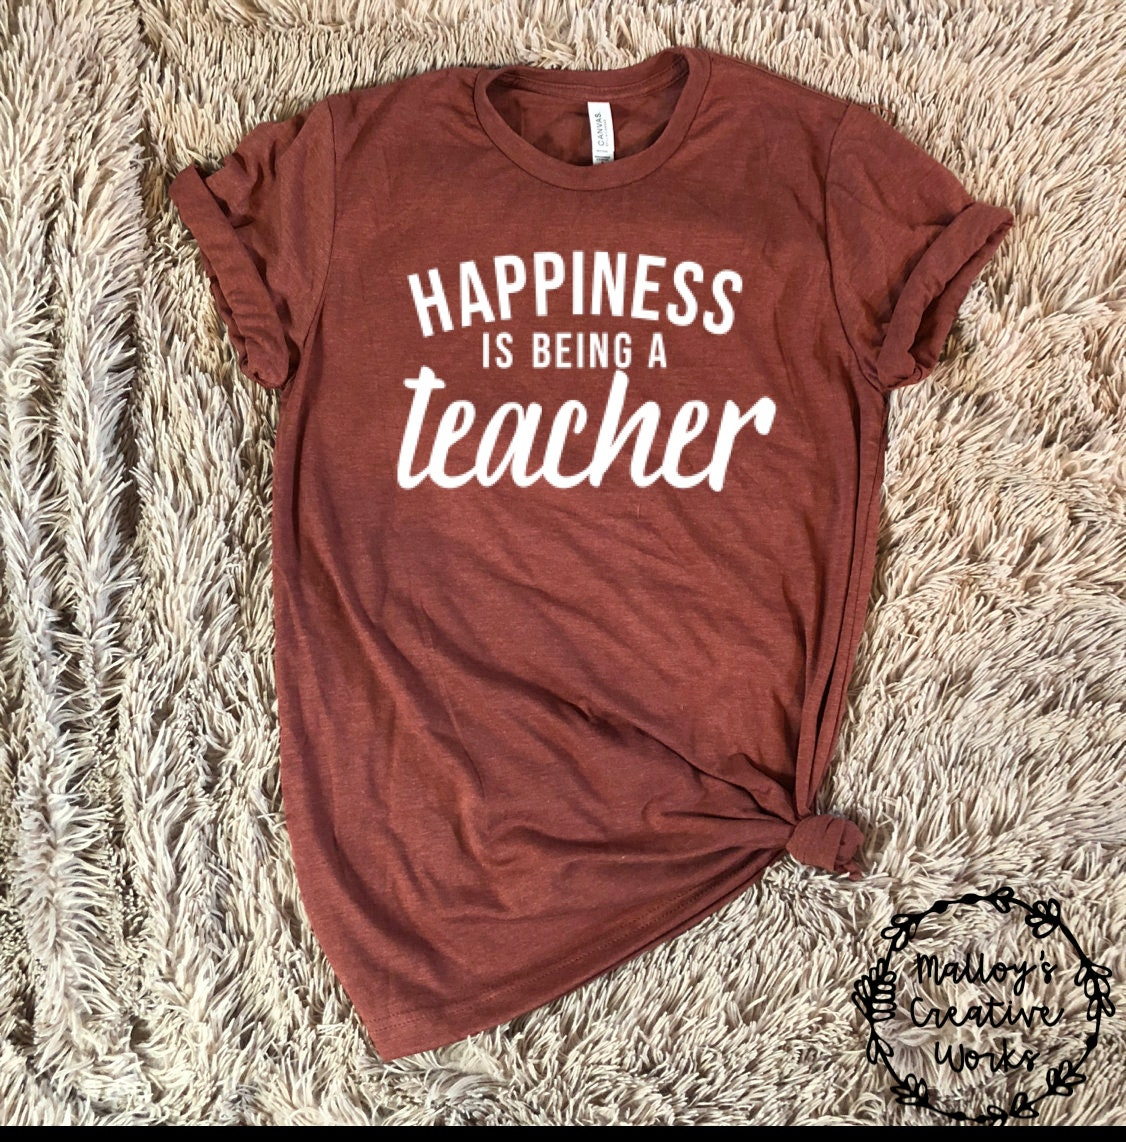 0a4719ae5e5 Happiness is Being a Teacher Graphic T-Shirt - Teacher T-Shirts - Women's  Graphic Tees - Men's Graphic Tees